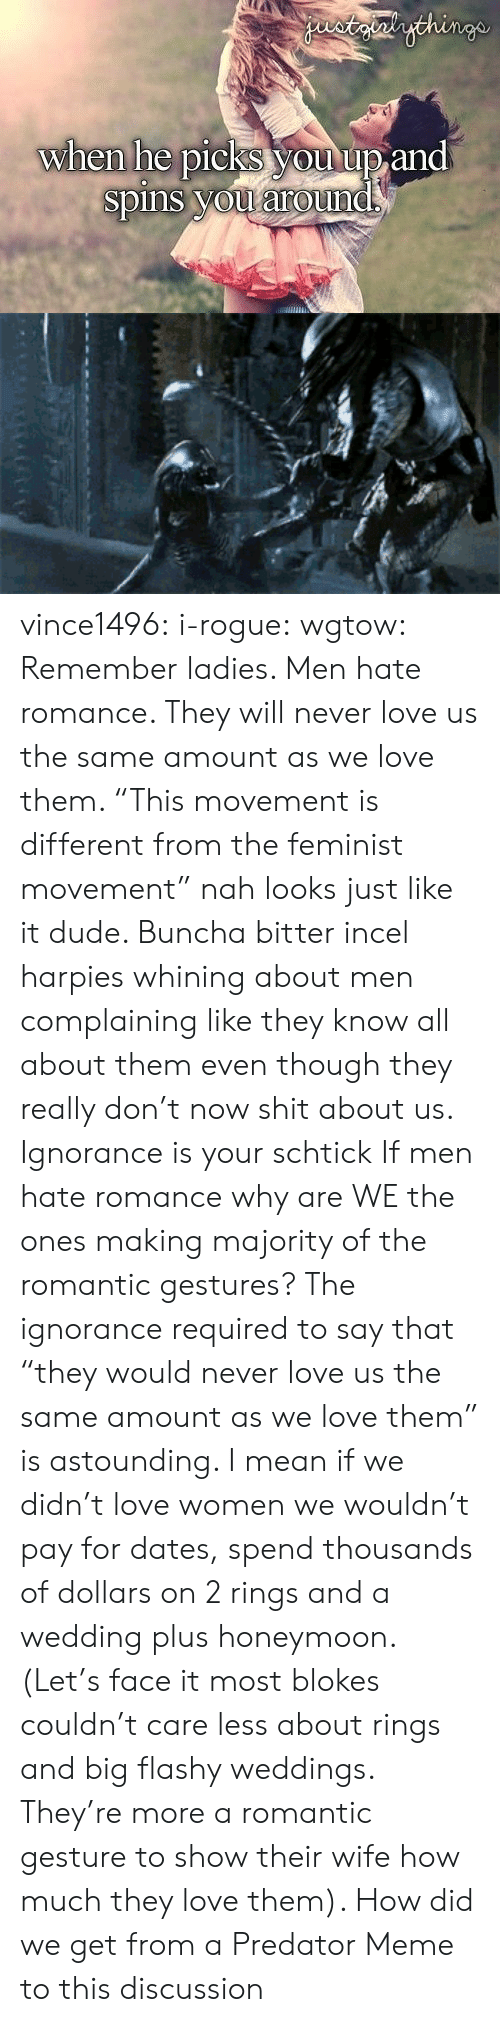 "Gestures: staialythinge  when he picks you up and  spins you around vince1496:  i-rogue:  wgtow:  Remember ladies. Men hate romance. They will never love us the same amount as we love them.   ""This movement is different from the feminist movement"" nah looks just like it dude. Buncha bitter incel harpies whining about men complaining like they know all about them even though they really don't now shit about us. Ignorance is your schtick  If men hate romance why are WE the ones making majority of the romantic gestures? The ignorance required to say that ""they would never love us the same amount as we love them"" is astounding. I mean if we didn't love women we wouldn't pay for dates, spend thousands of dollars on 2 rings and a wedding plus honeymoon. (Let's face it most blokes couldn't care less about rings and big flashy weddings. They're more a romantic gesture to show their wife how much they love them).   How did we get from a Predator Meme to this discussion"